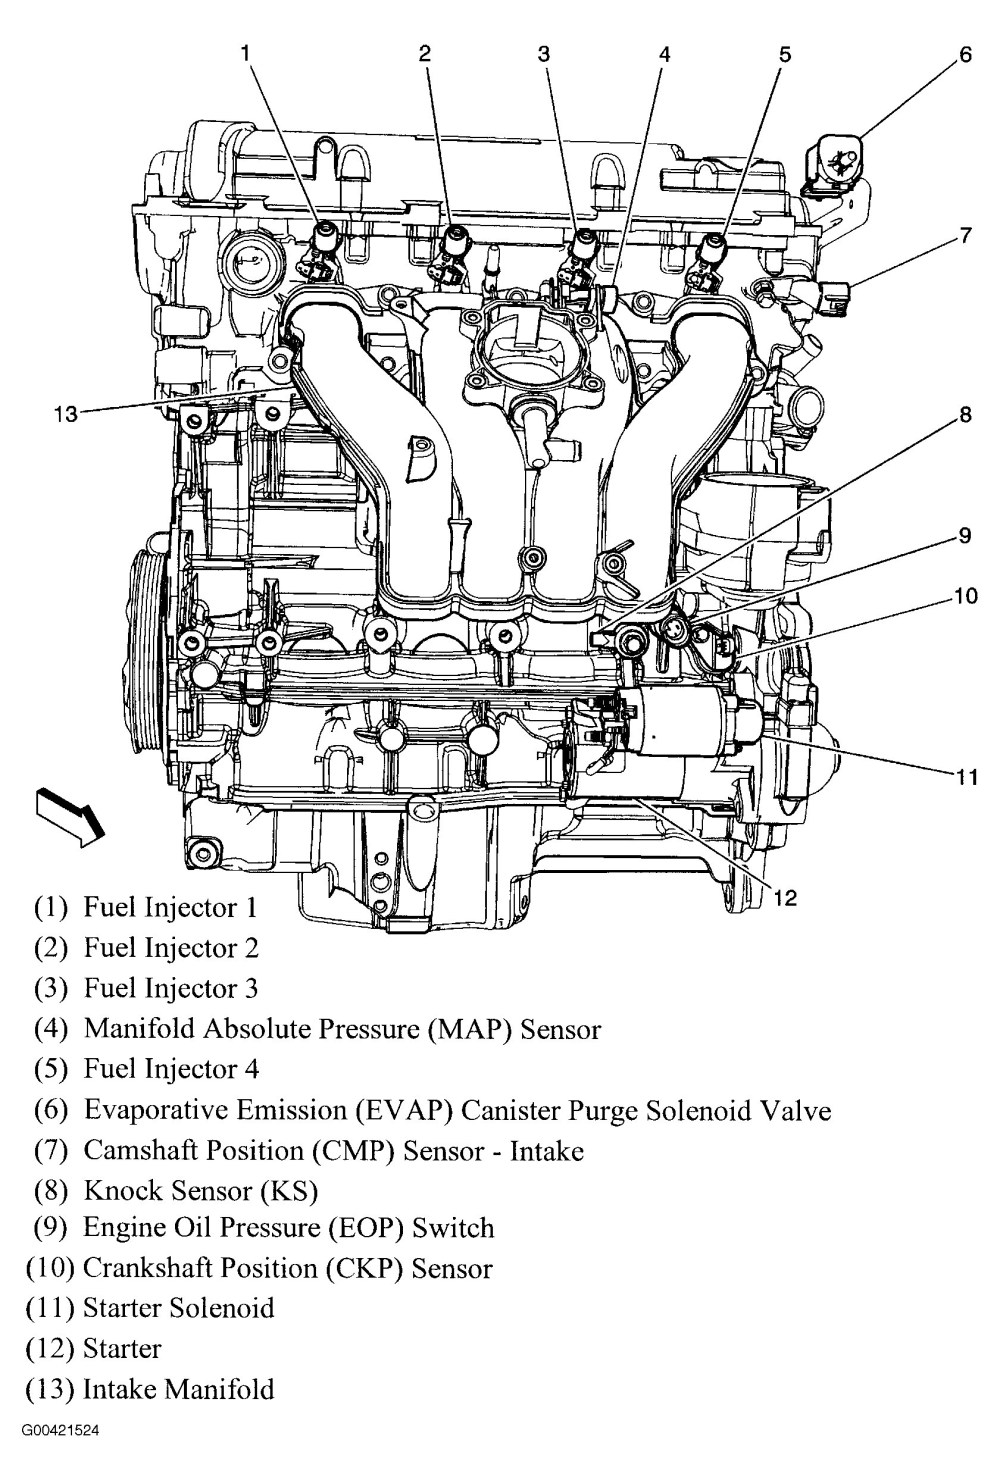 medium resolution of 2001 pontiac montana engine diagrams wiring diagram mega 2001 pontiac montana engine diagrams wiring diagram used